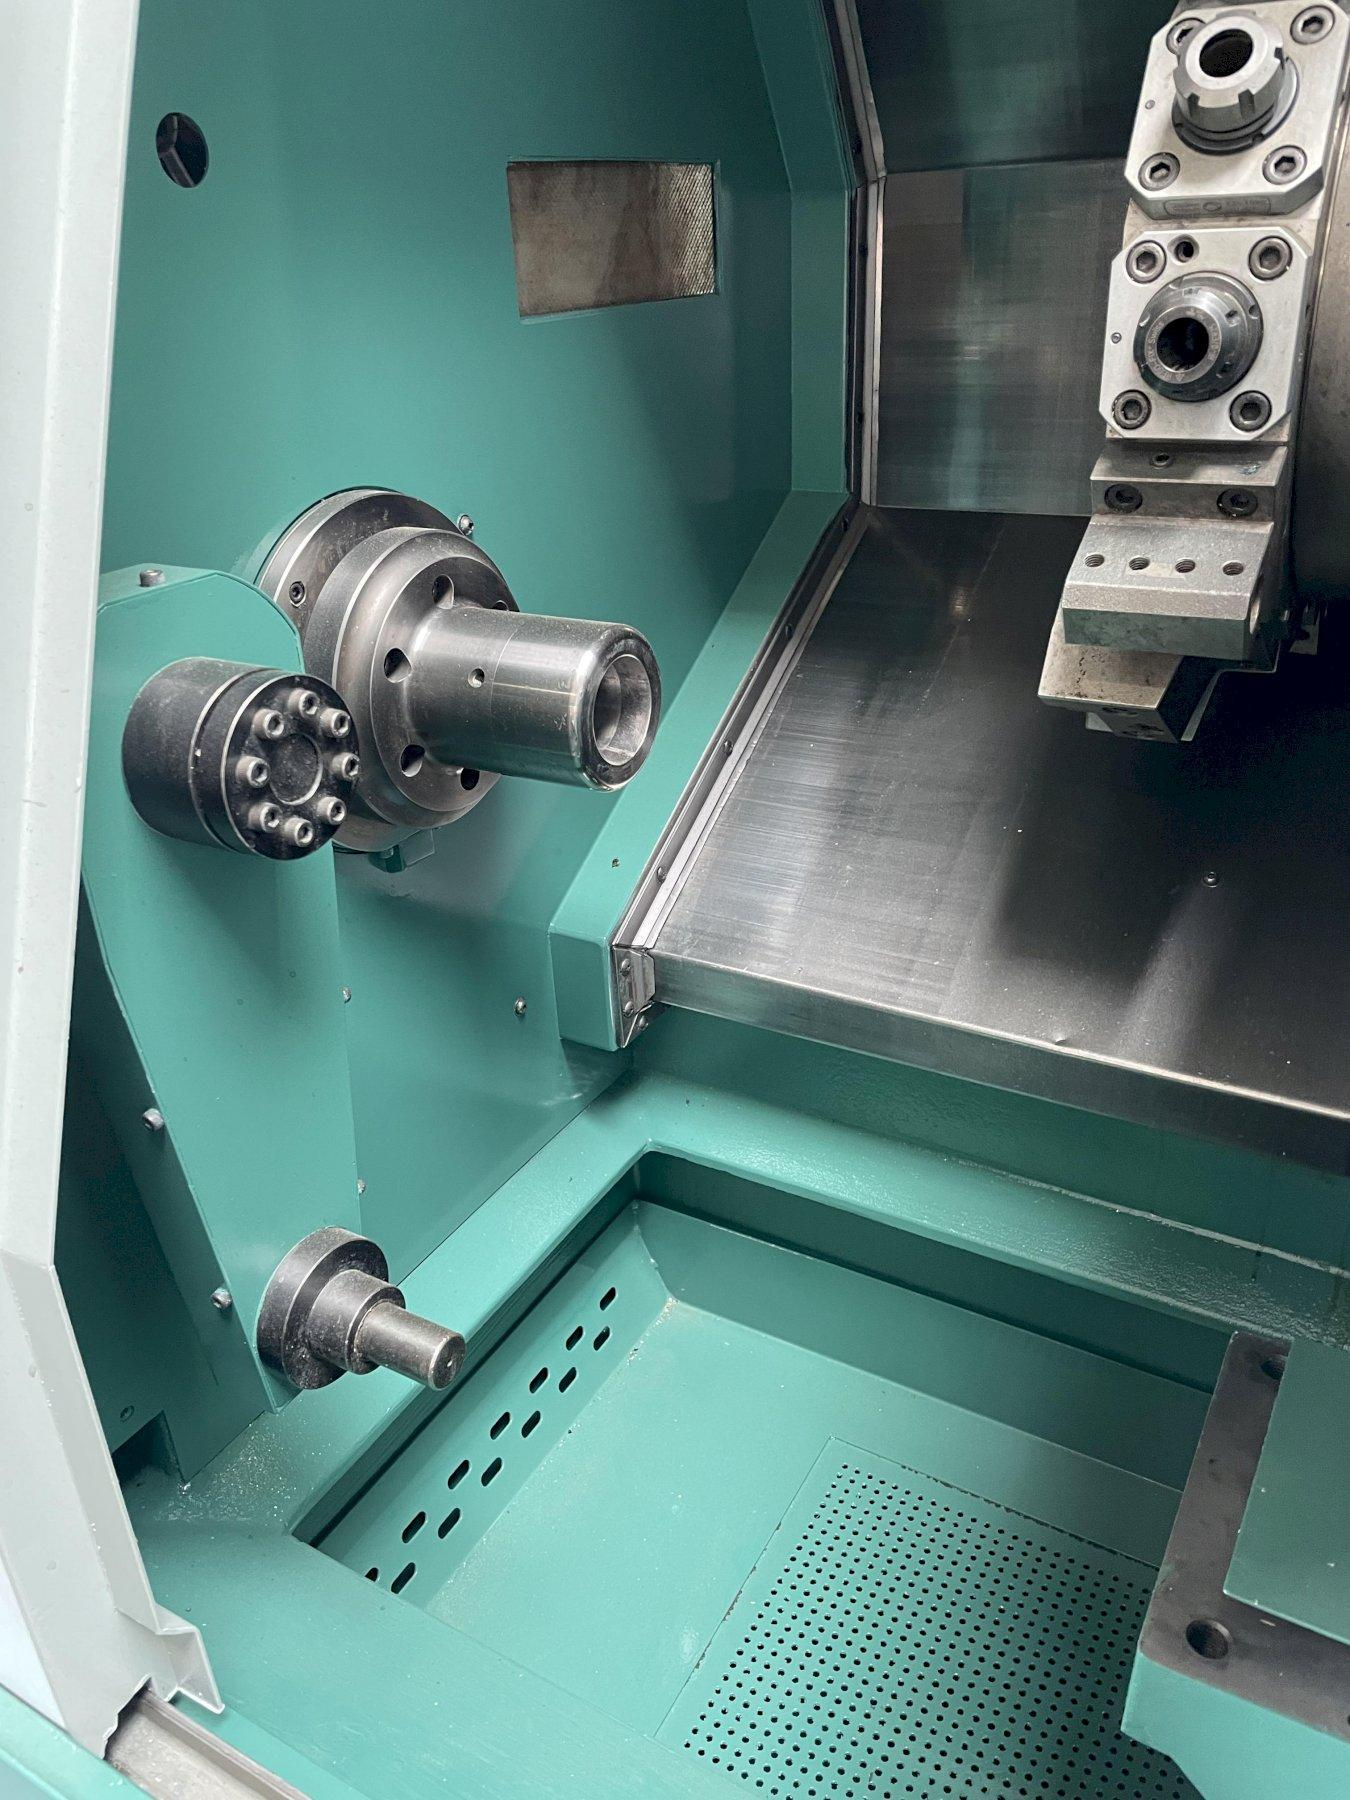 Nakamura Tome SC-150 CNC Turning Center 1999 with Fanuc 21iT CNC Control, Live Tooling, Collet Nose,  No Chuck.